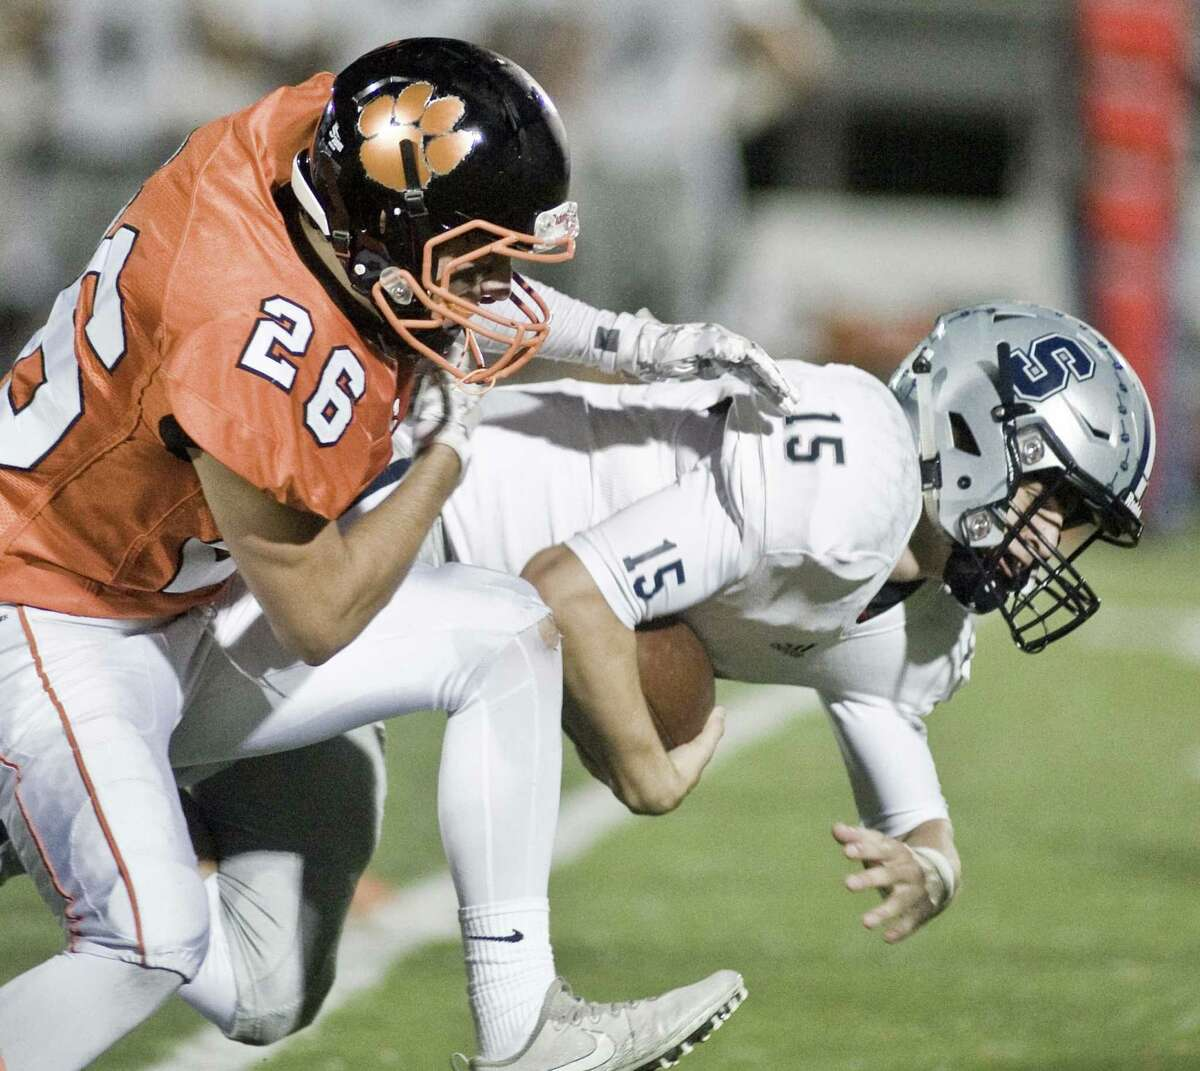 Ridgefield High School's Luke Faillaci tries to bring down Staples High School's Jake Thaw in a game played at Ridgefield. Friday, Sept. 28, 2018